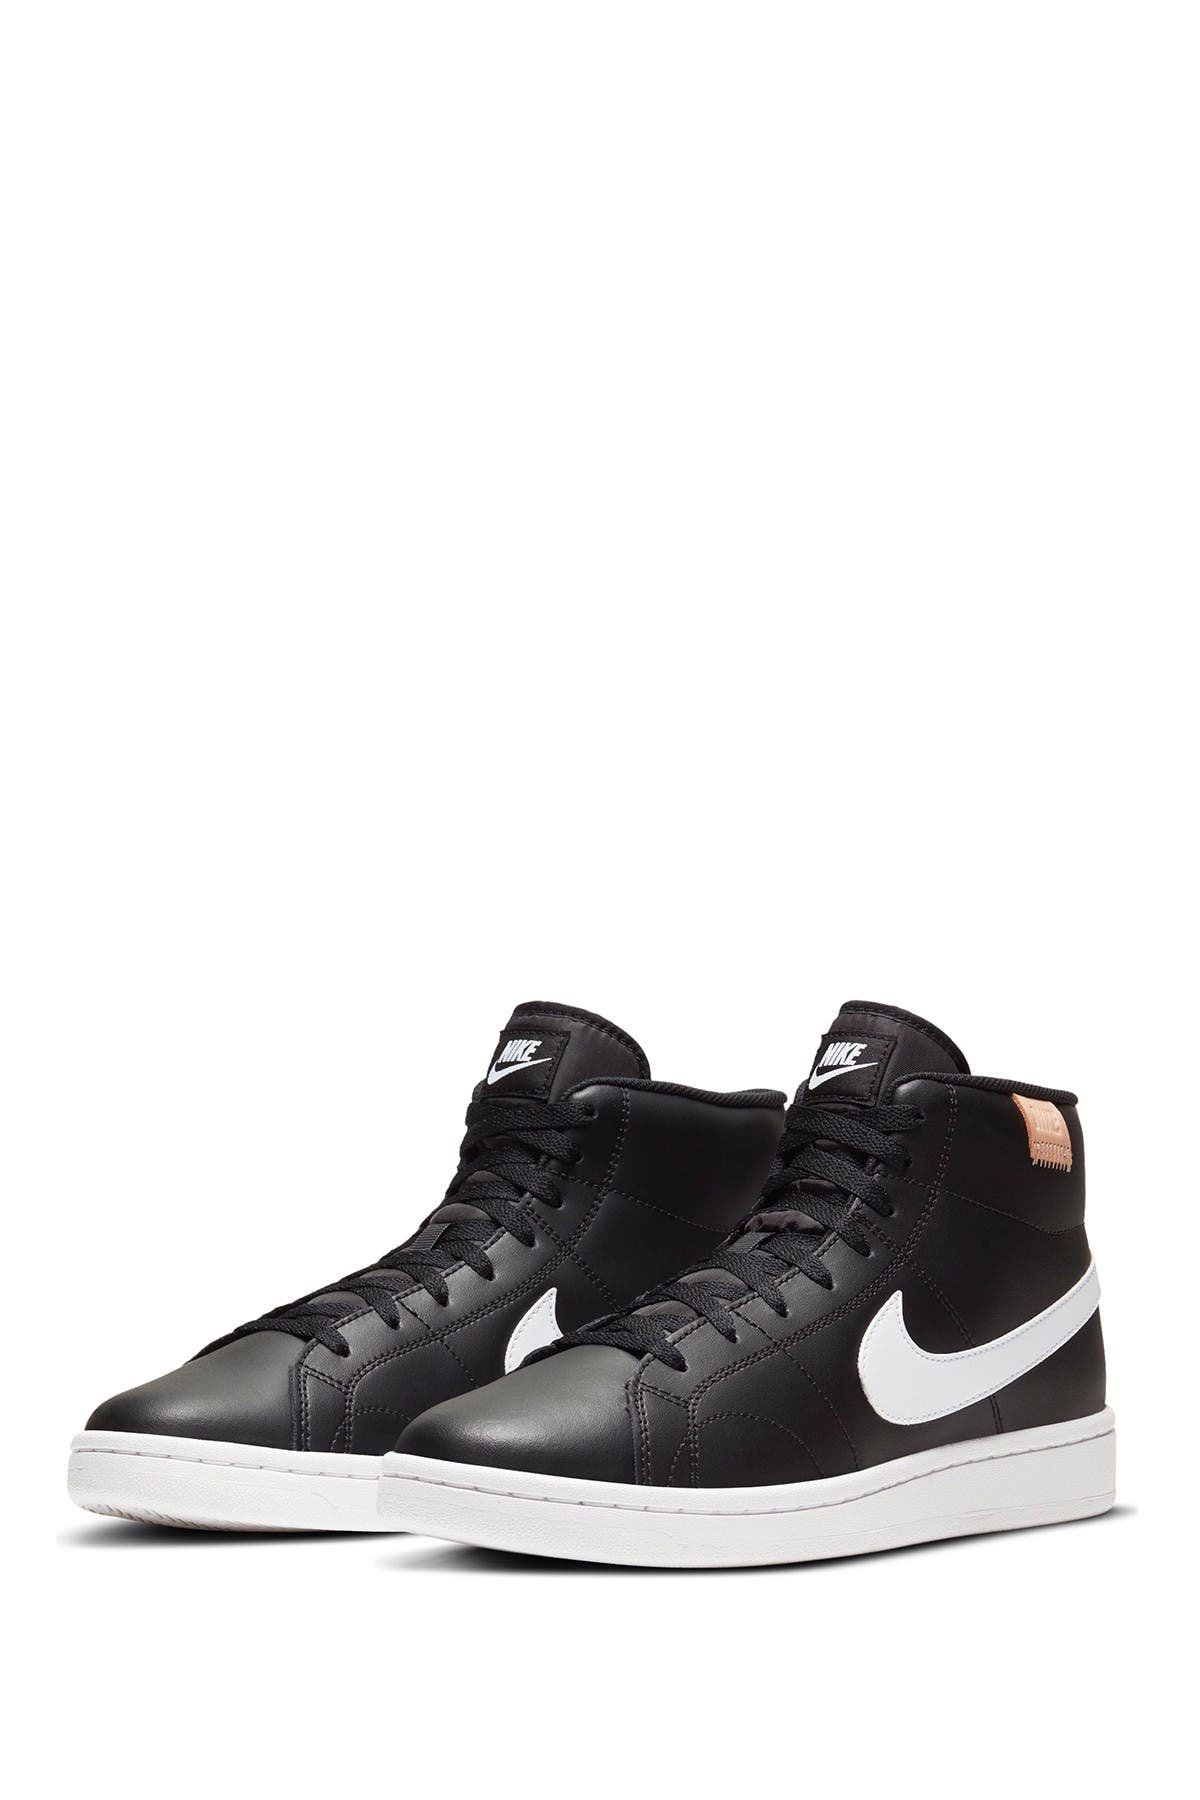 Image of Nike Court Royale 2 Mid Sneaker